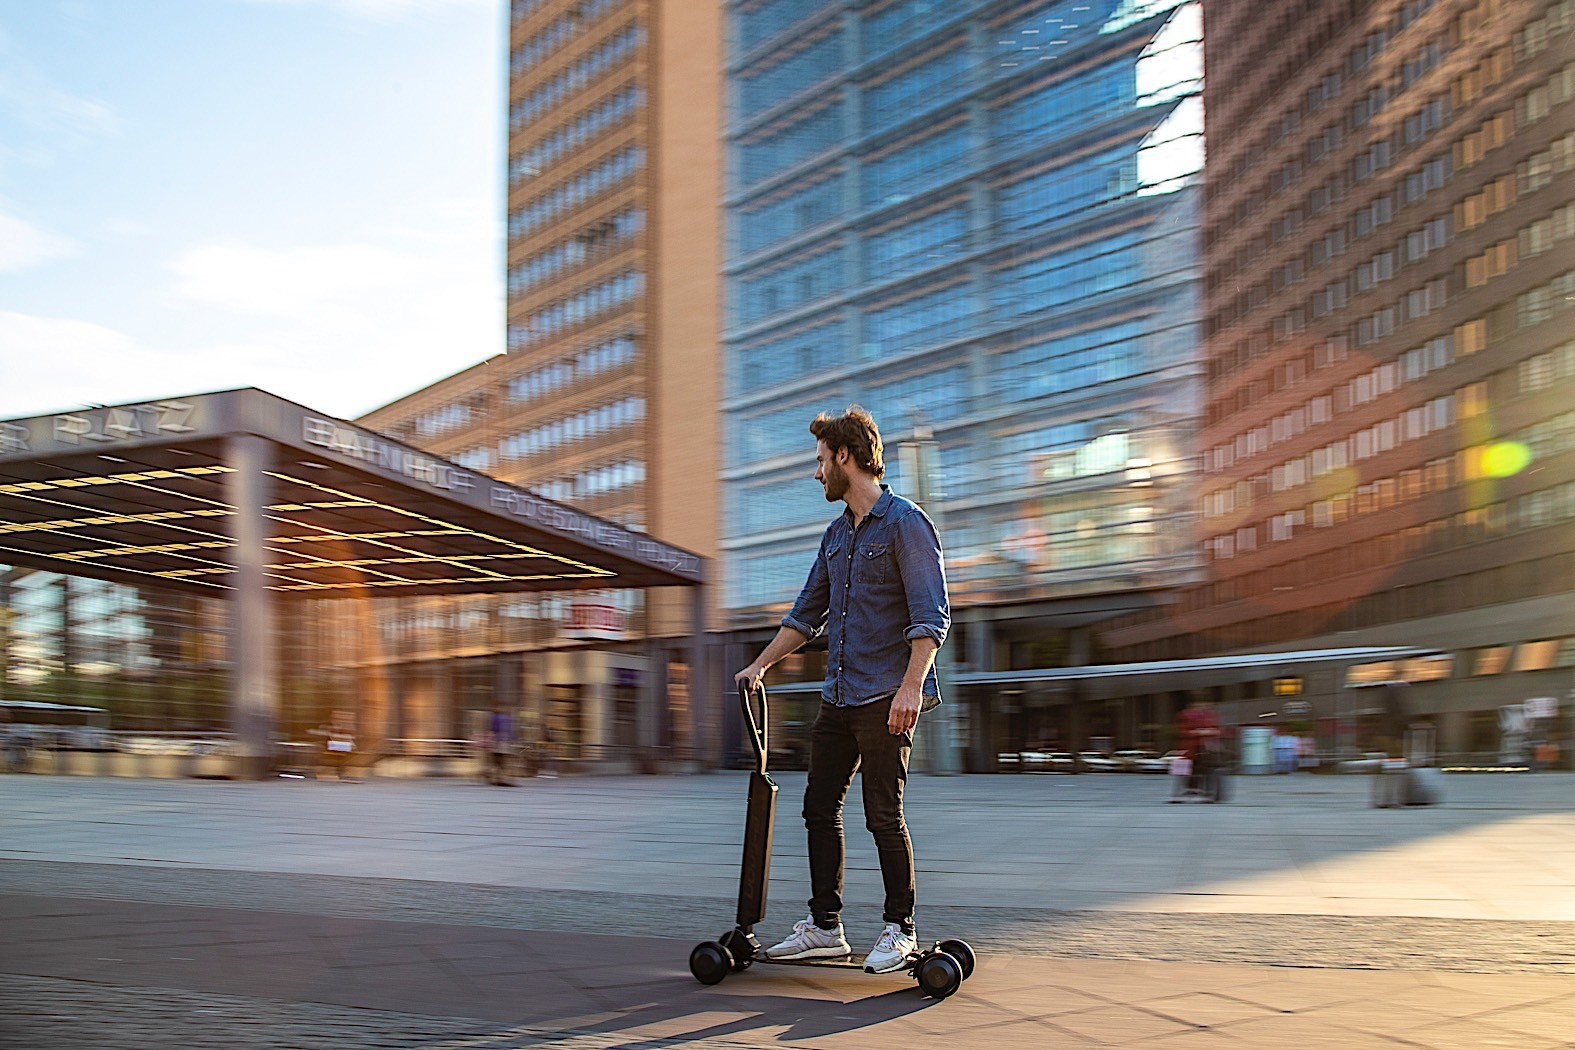 audi-to-give-this-scooter-skateboard-hybrid-for-free-to-e-tron-car-buyers_3